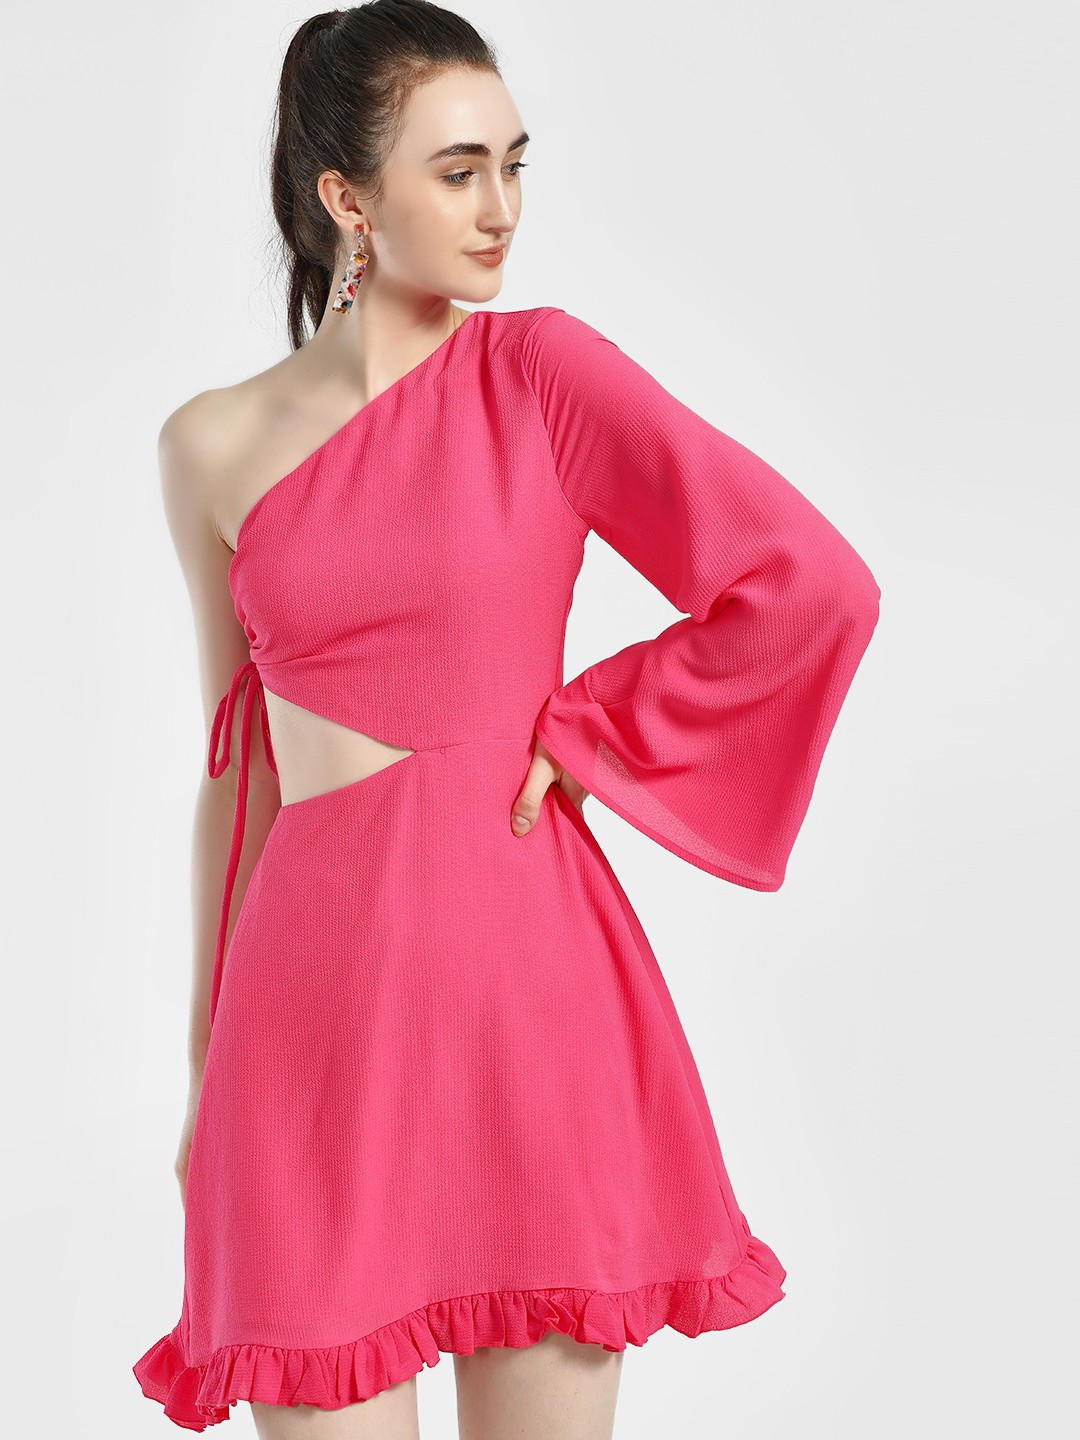 KOOVS Pink One Shoulder Cut-Out Skater Dress 1